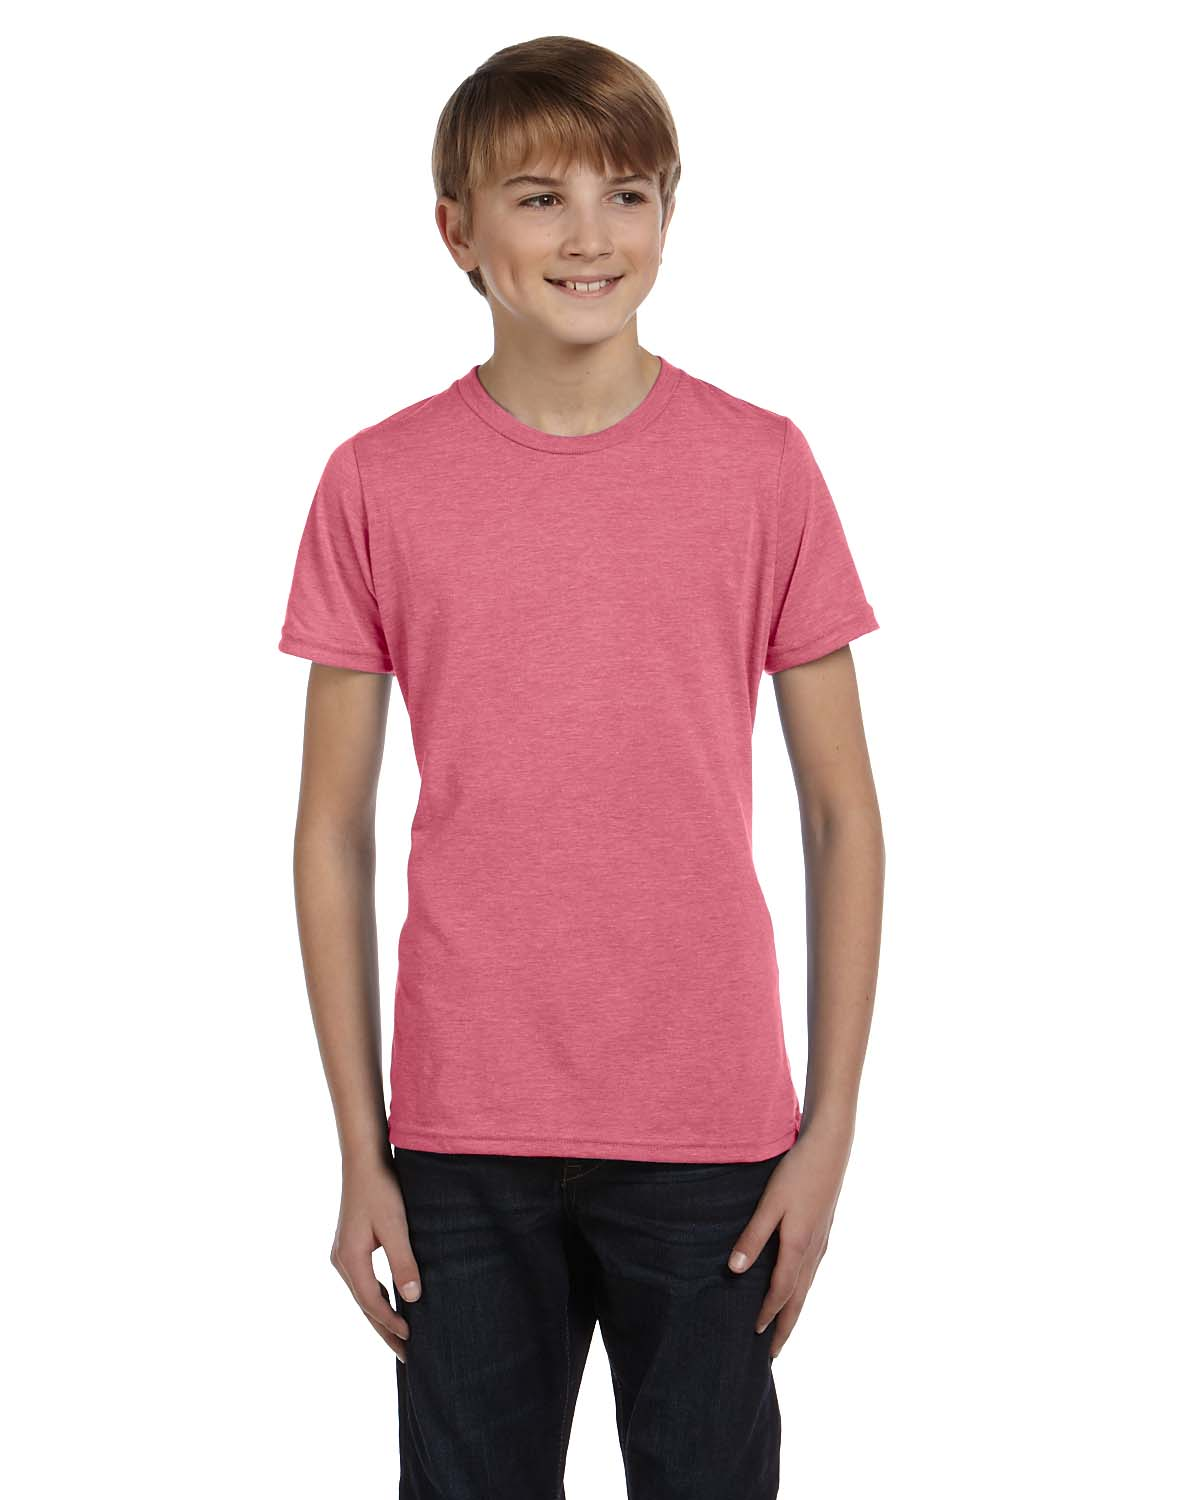 Bella Youth Jersey Short-Sleeve T-Shirt